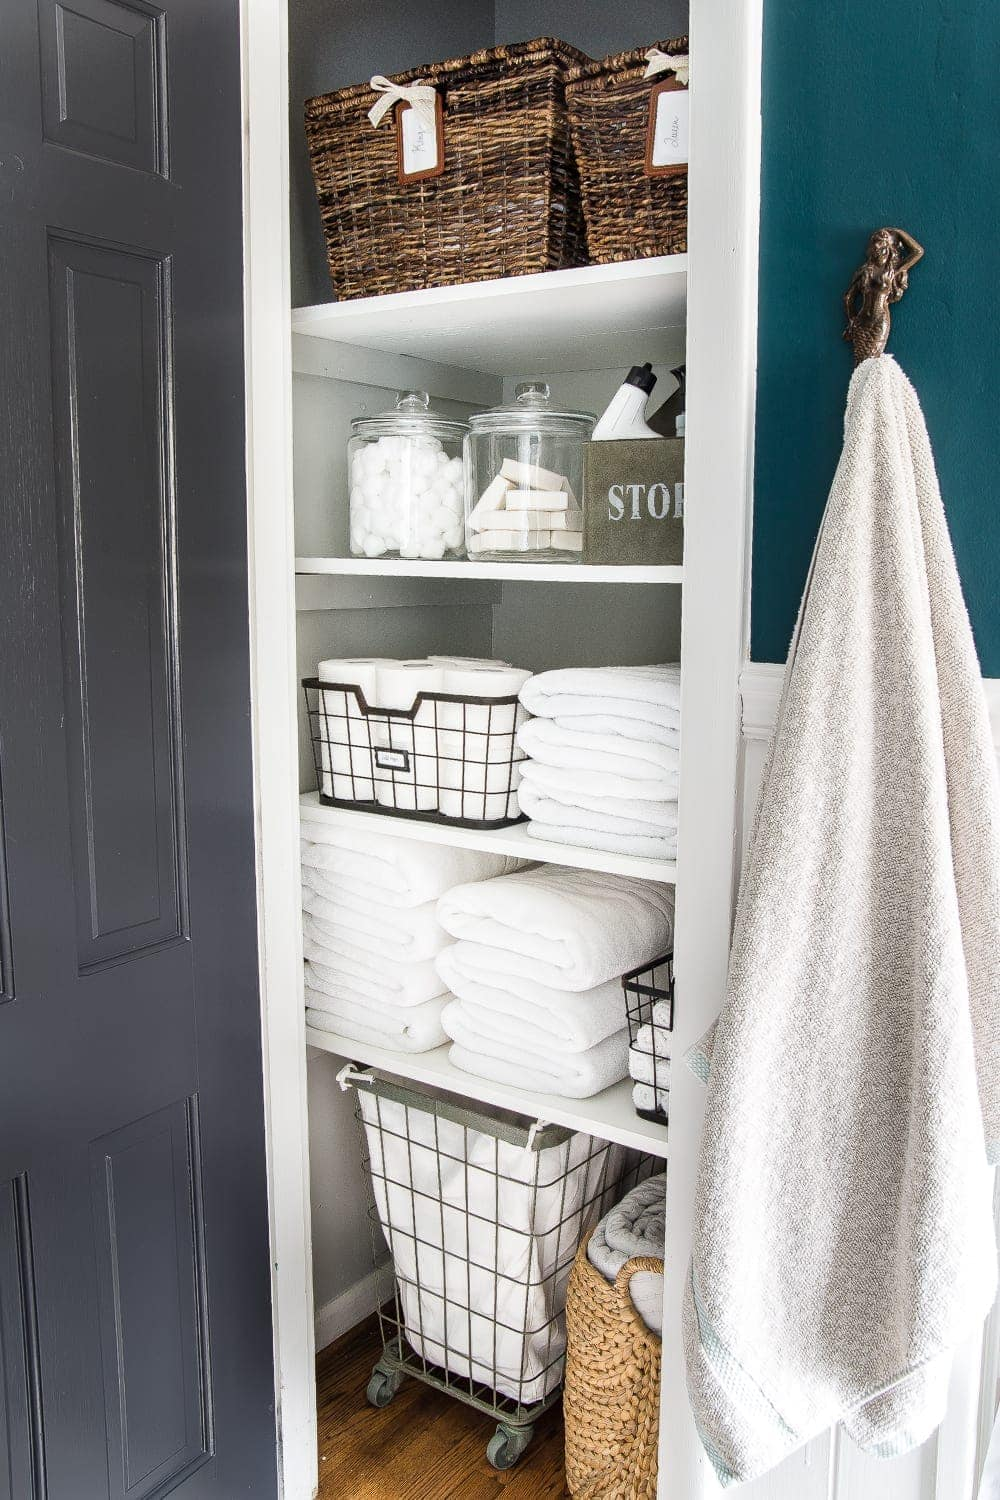 Organized linen closet + decluttering checklist printable